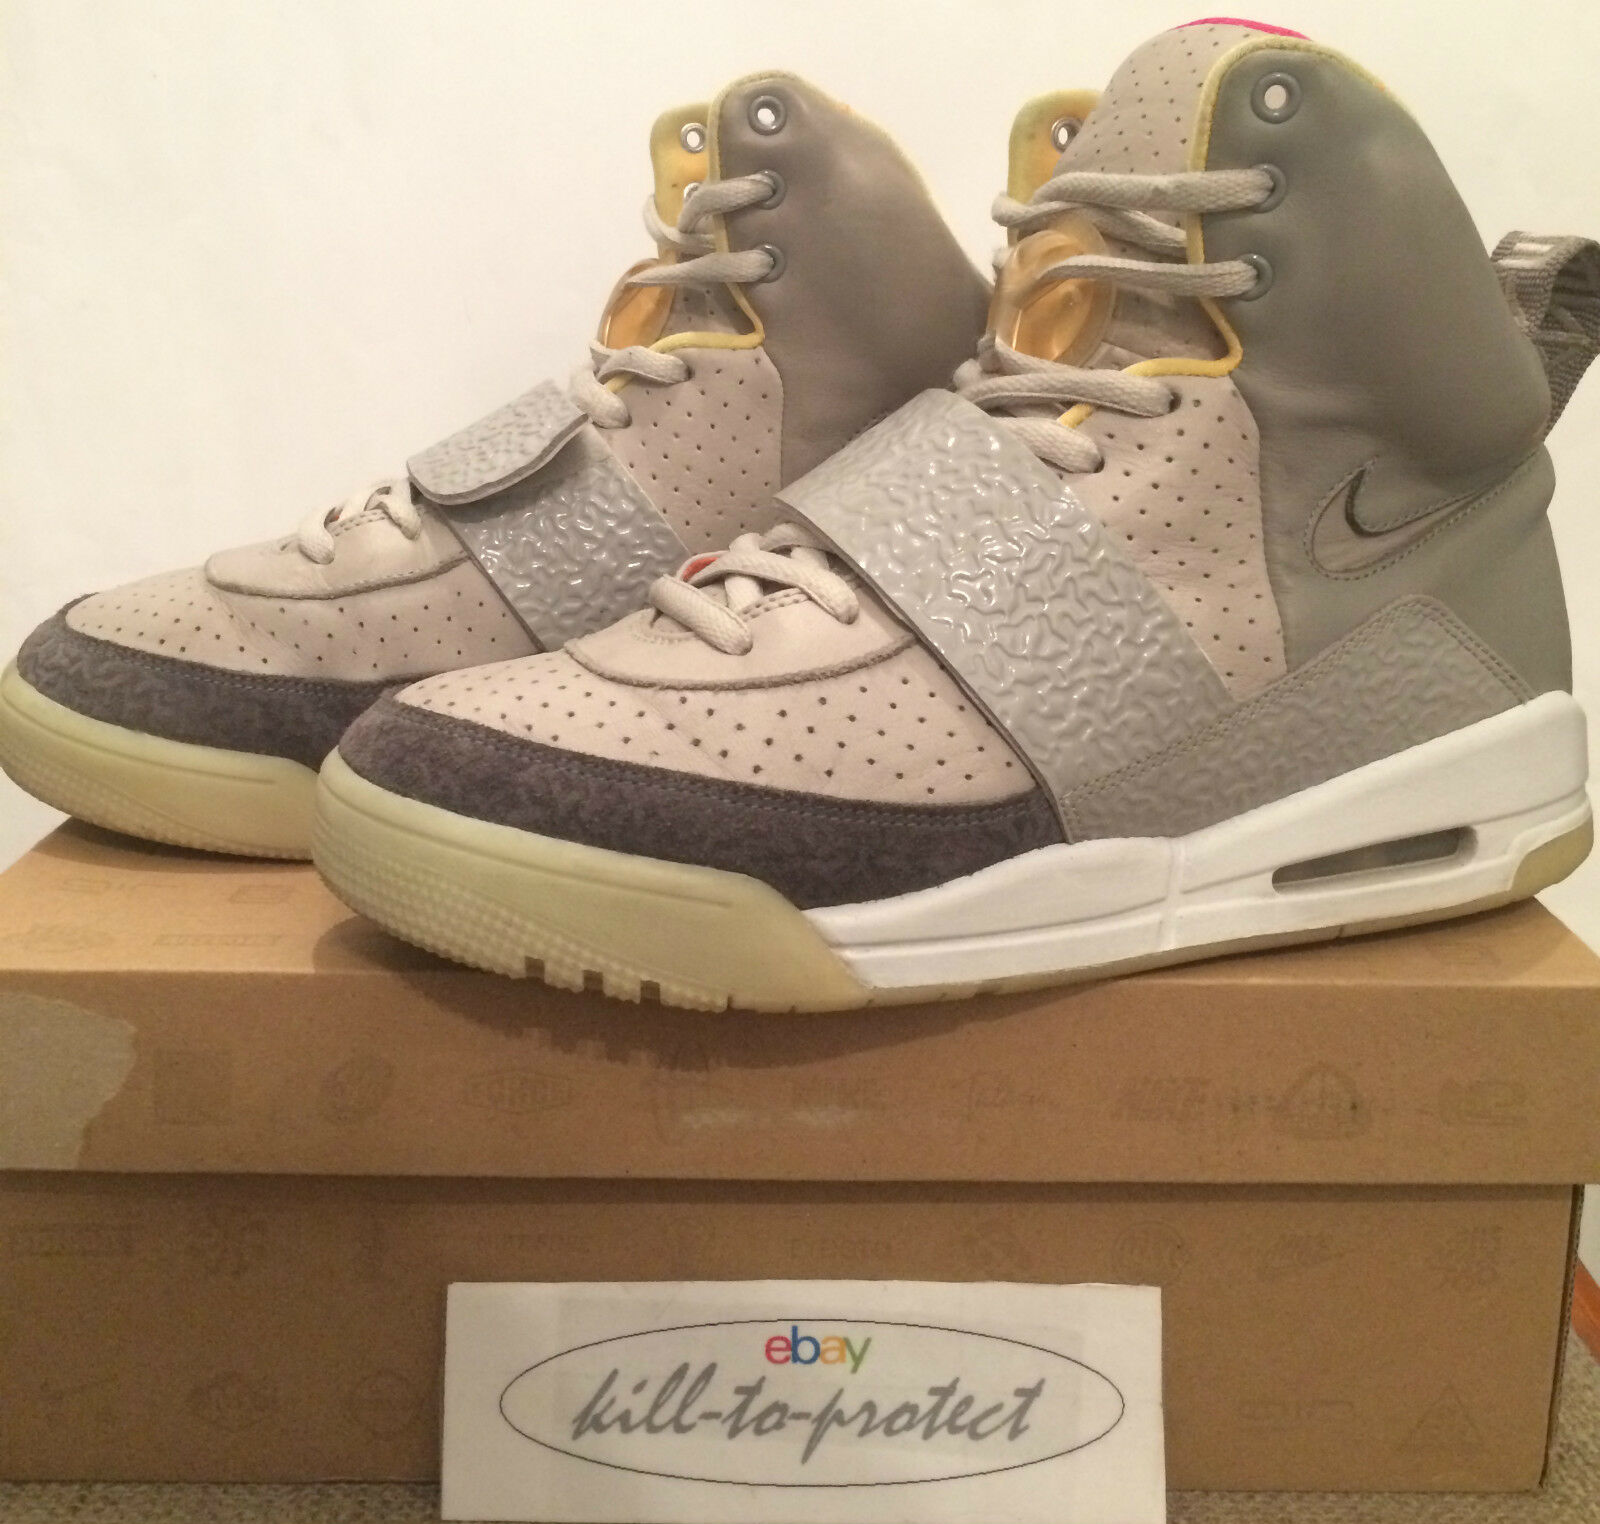 (USED) NIKE AIR YEEZY 1 One ZEN GREY US8 UK7 Tan 366164-002 By Kanye West 2009